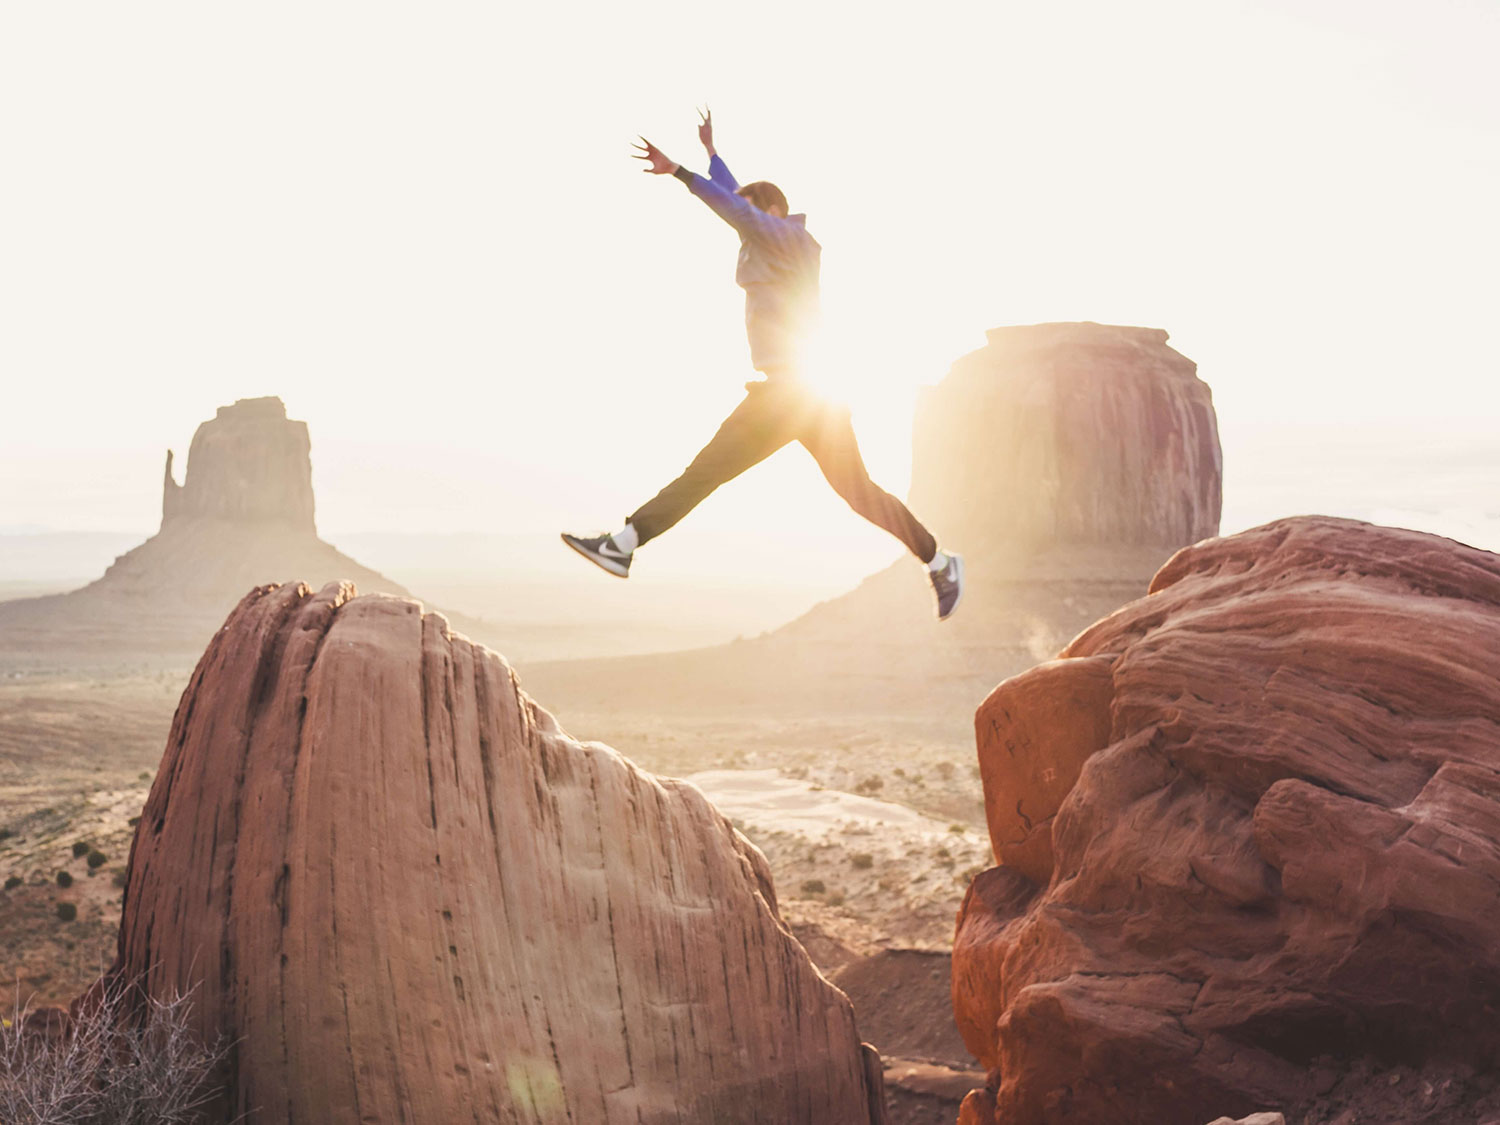 Young man successfully jumping from one rock to another in a mountainous area.